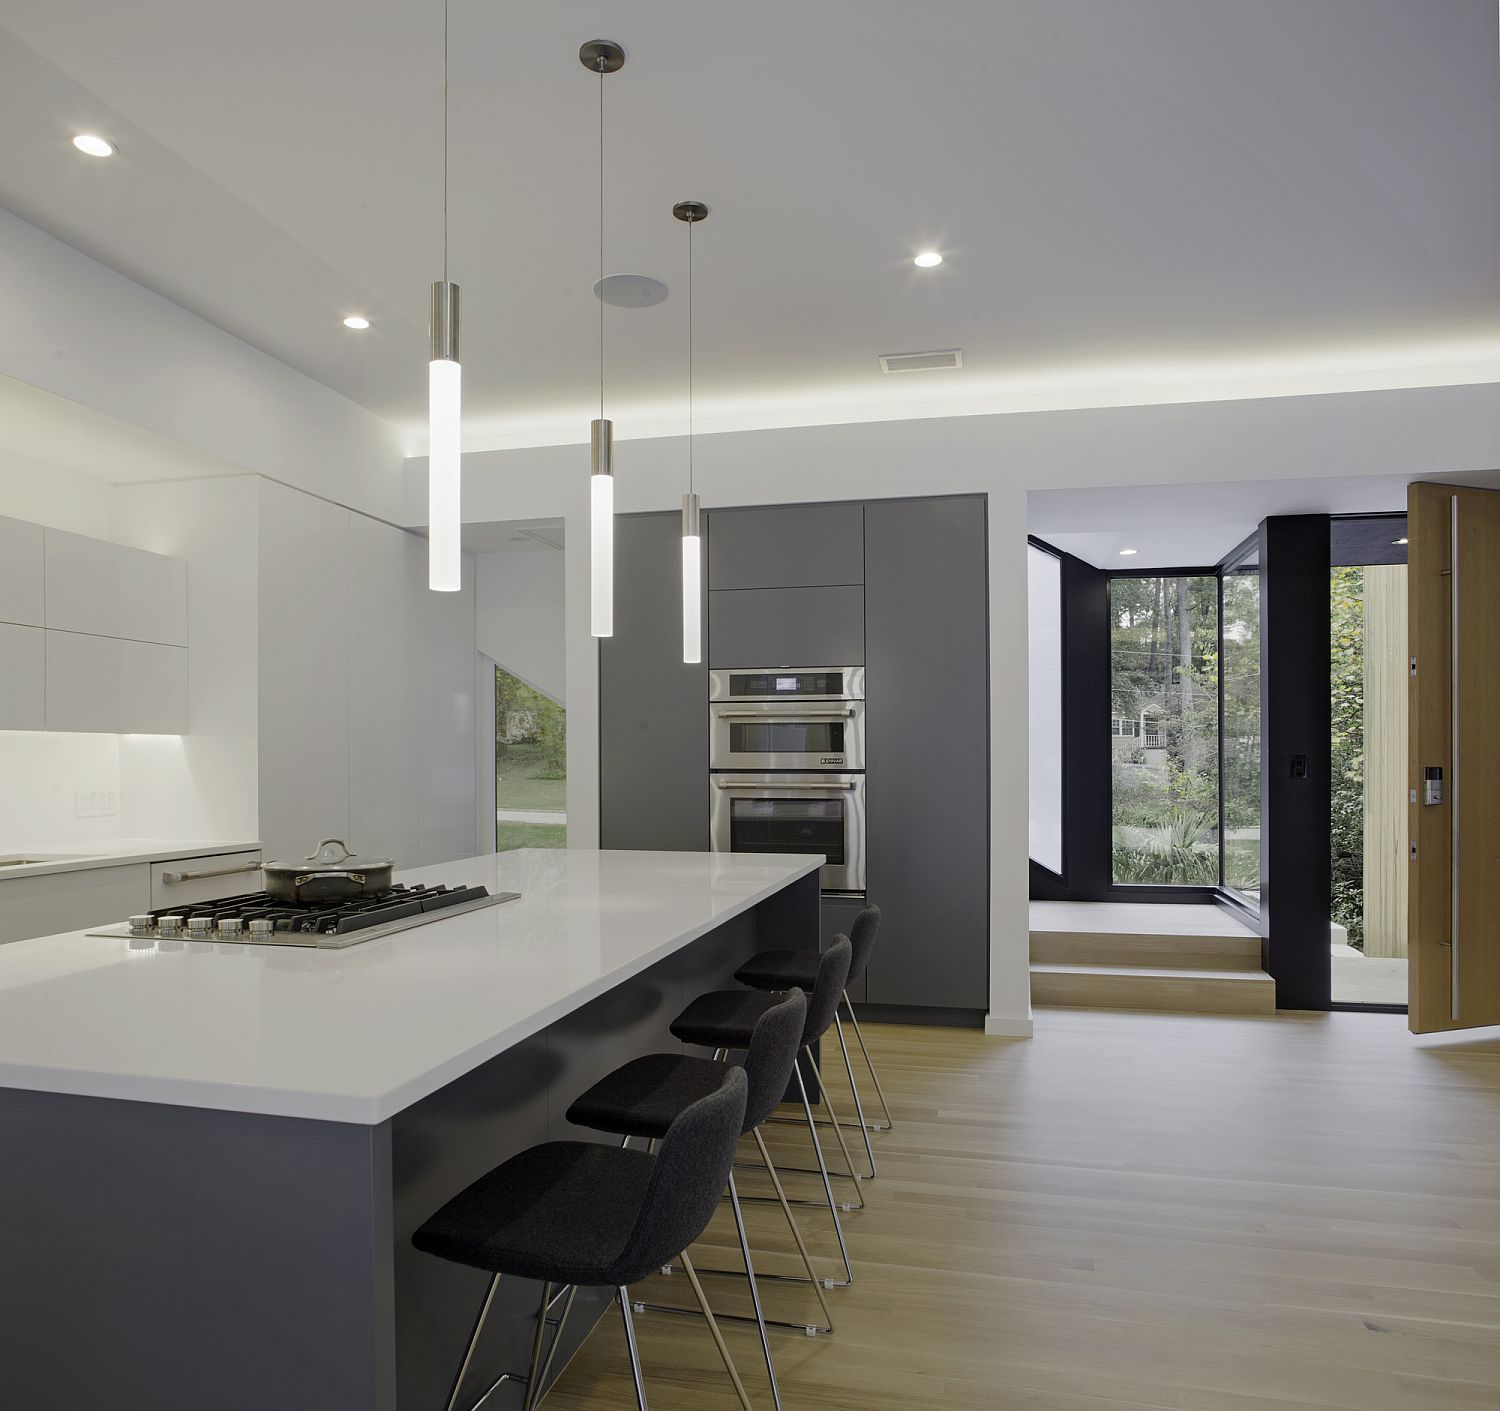 Gray and white kitchen with minimal pendant lights